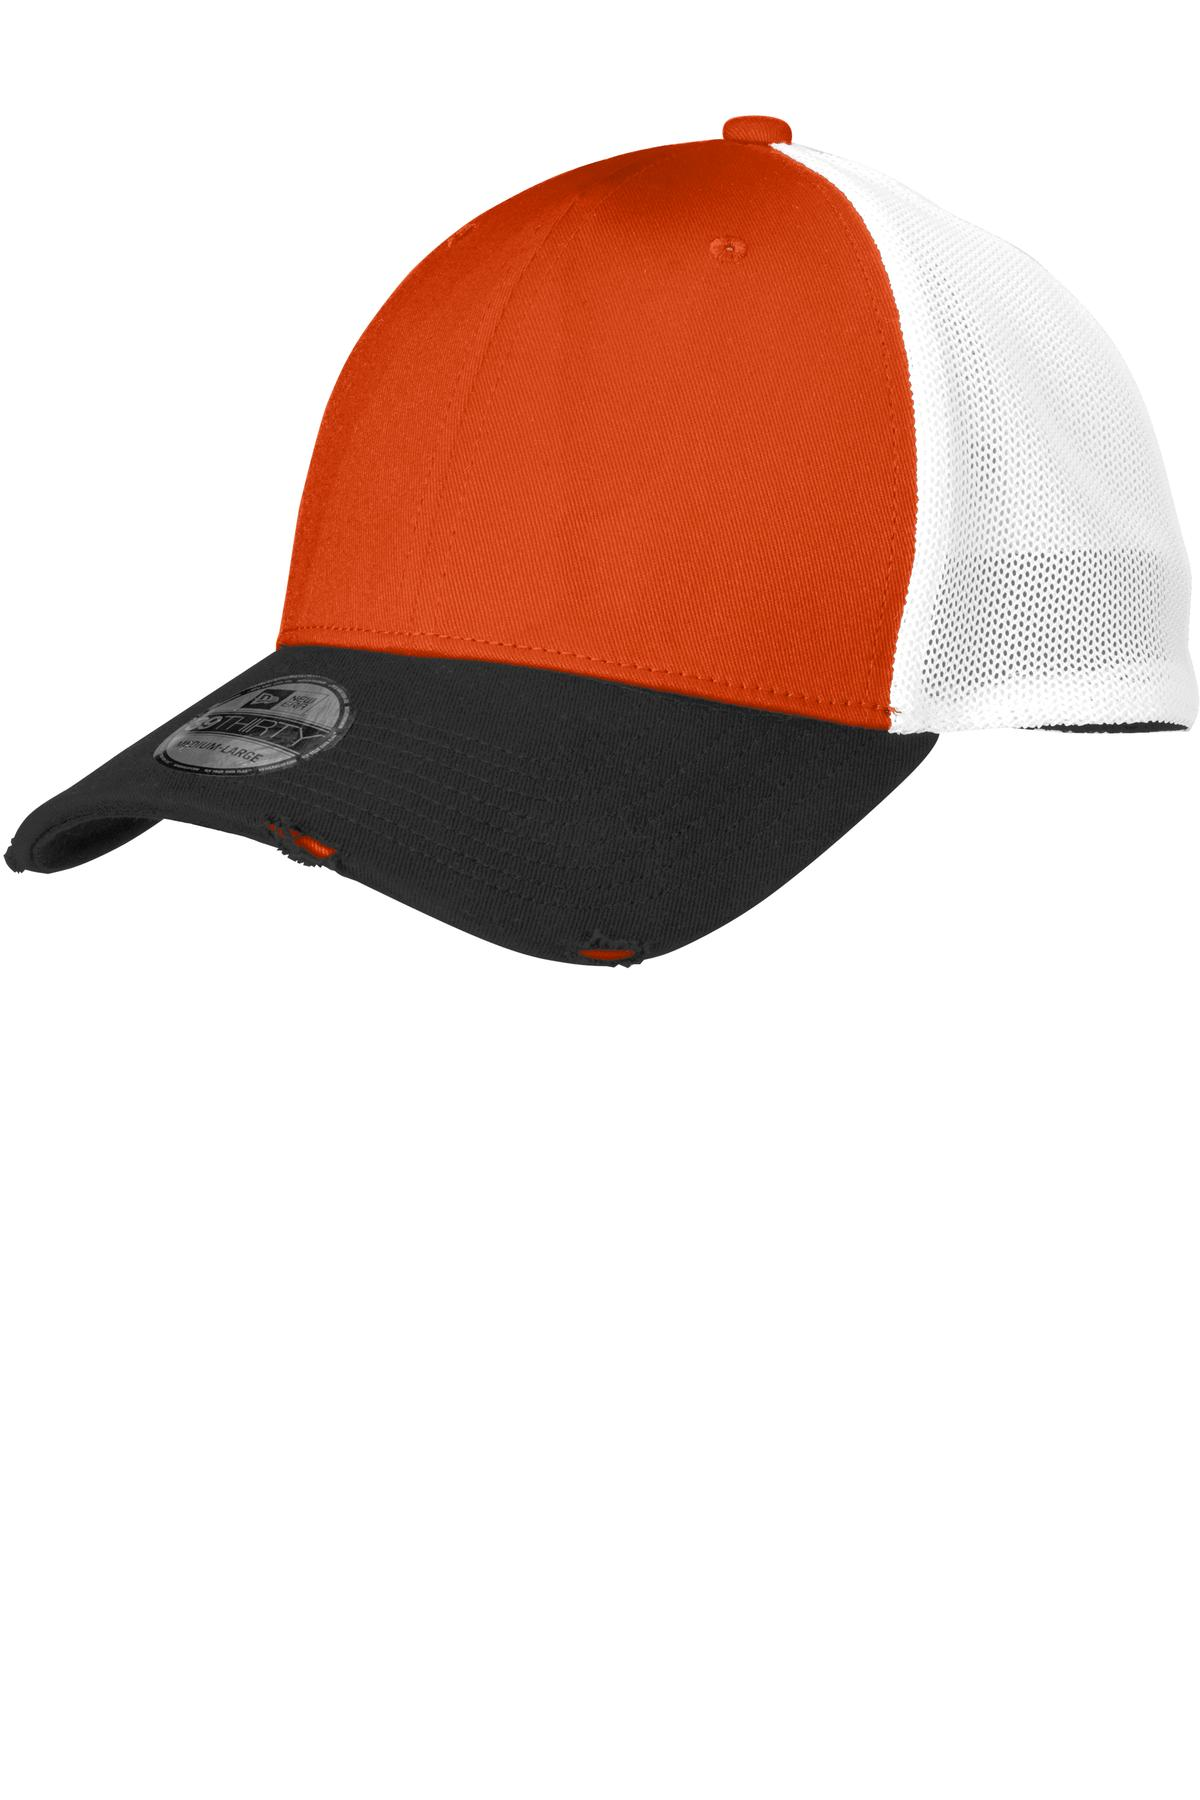 7808e4a8092 Buy Shop Hats – View All Apparel Online in NC – Impact Plus